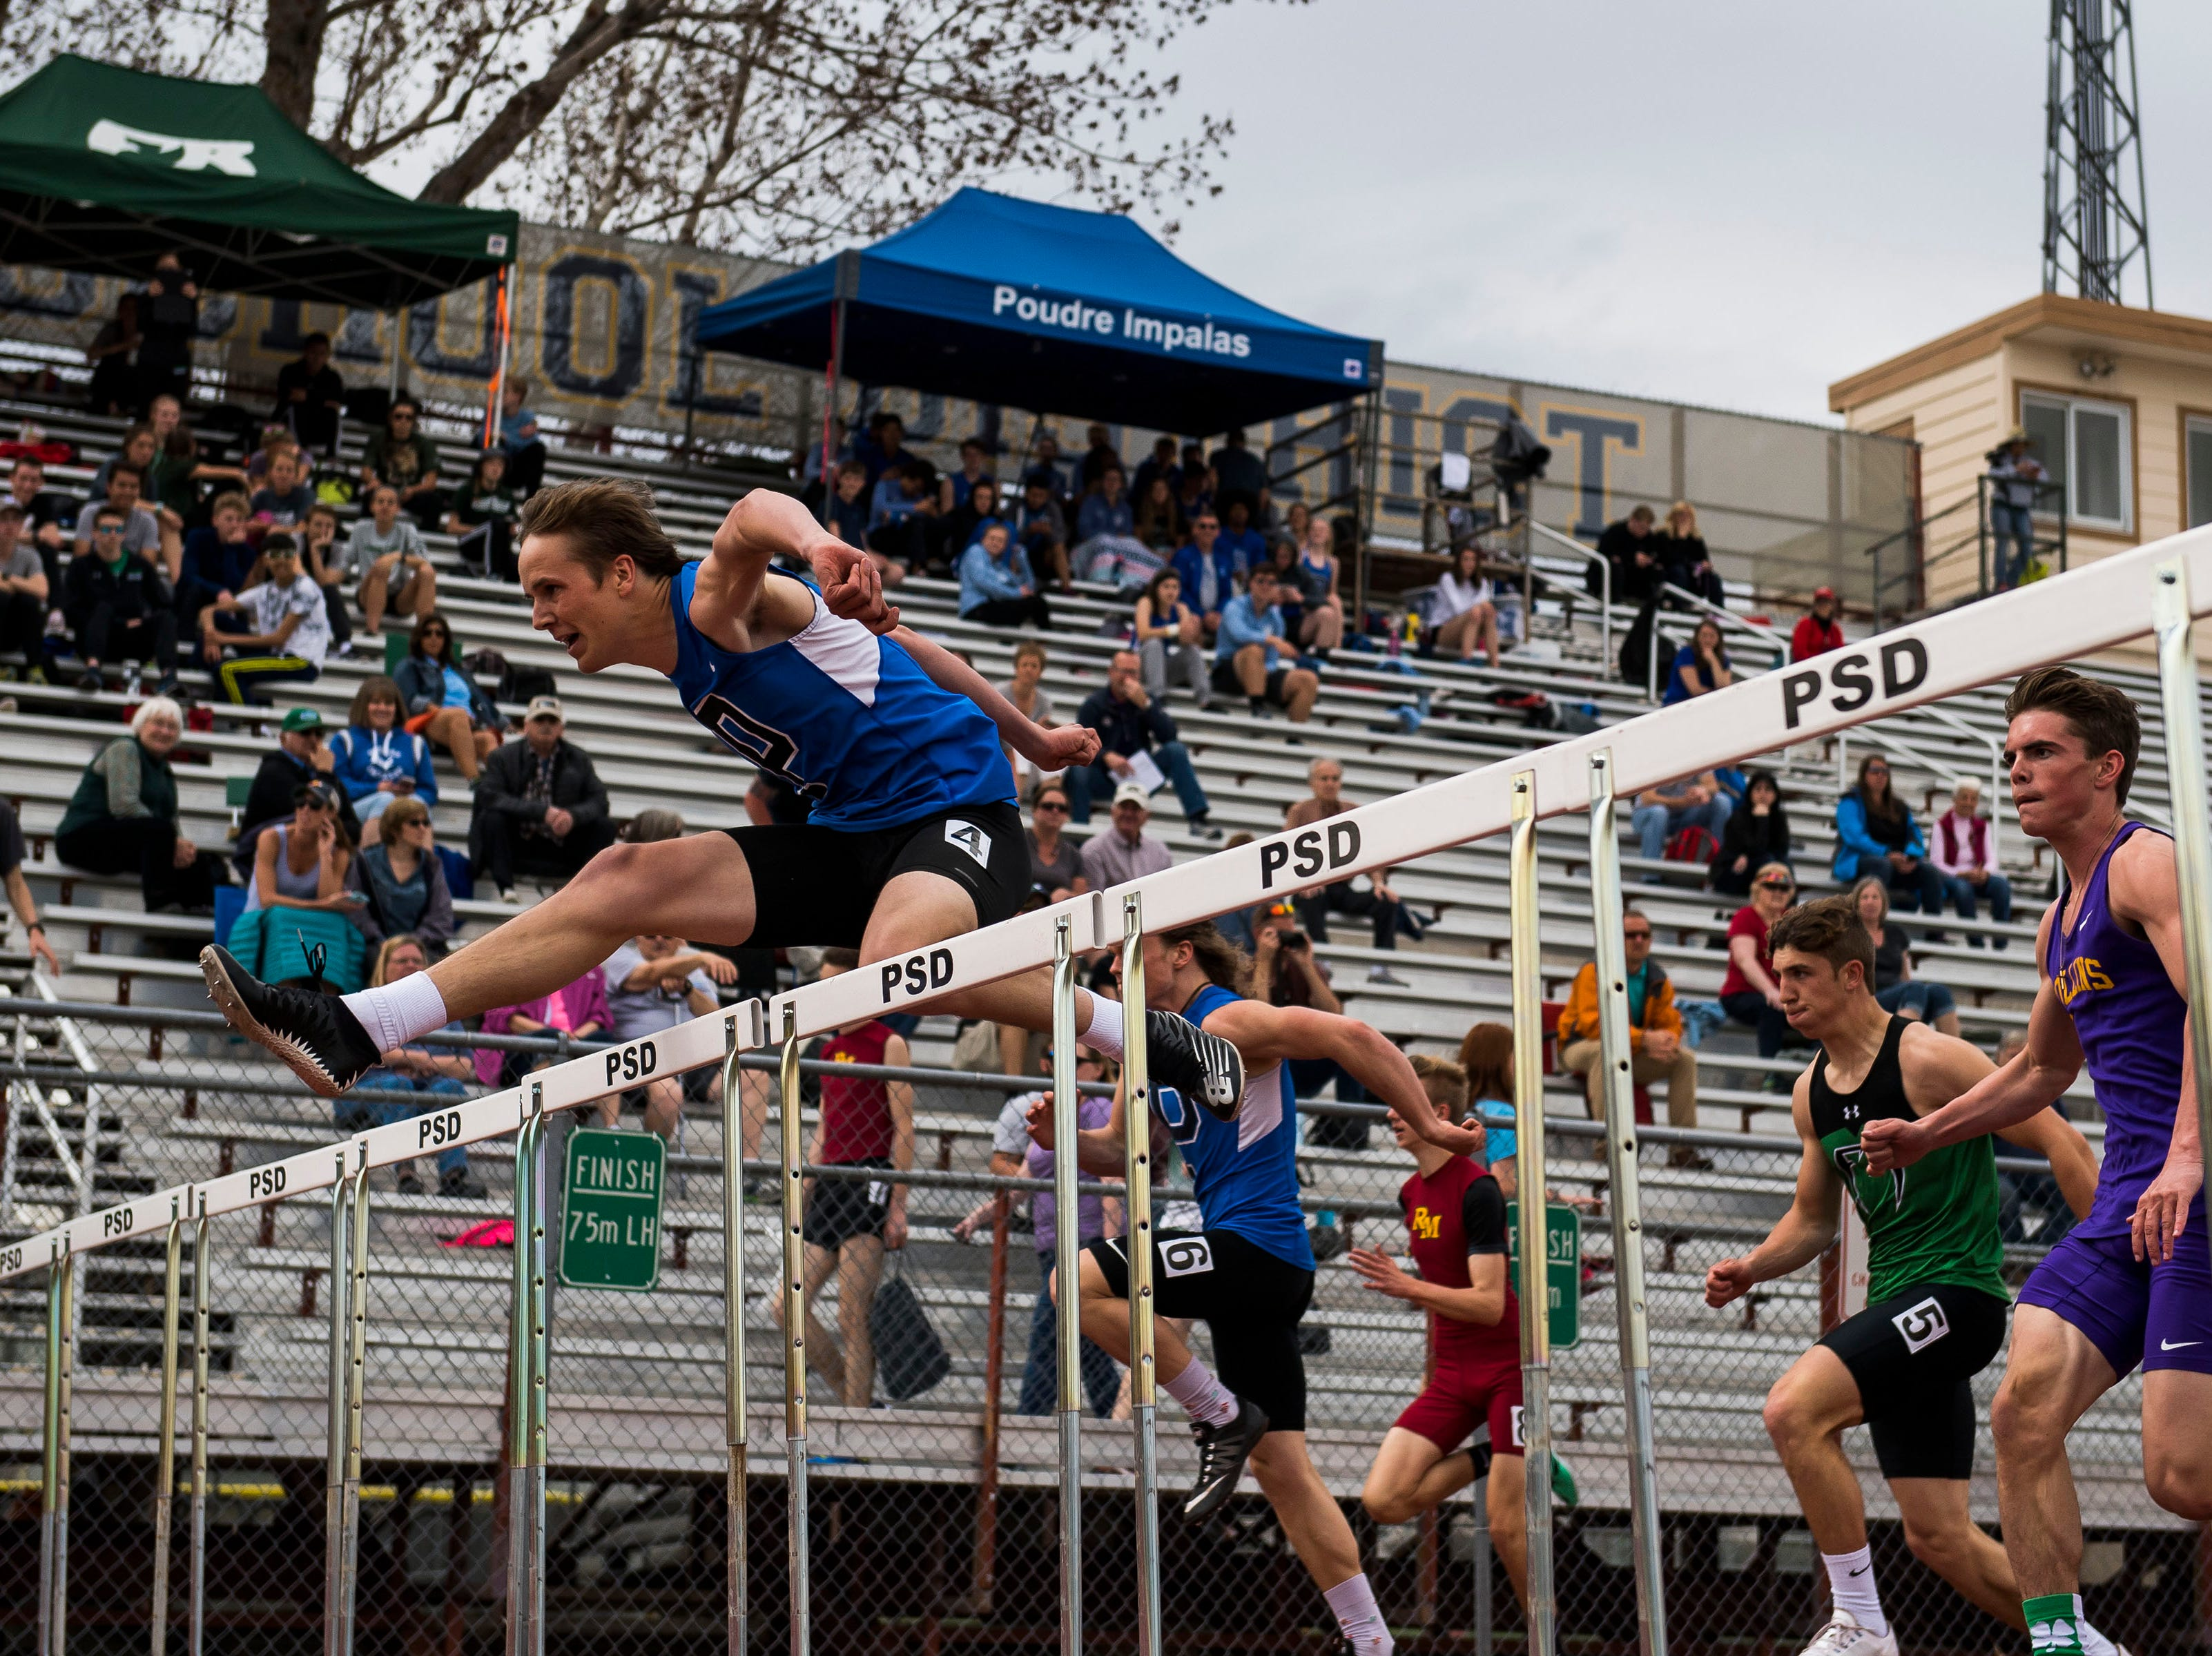 Poudre's Hunter Greenlee leads his heat in the boys 110-meter hurdles during the Randy Yaussi City Track Championships on Tuesday, April 9, 2019, at French Field in Fort Collins, Colo.